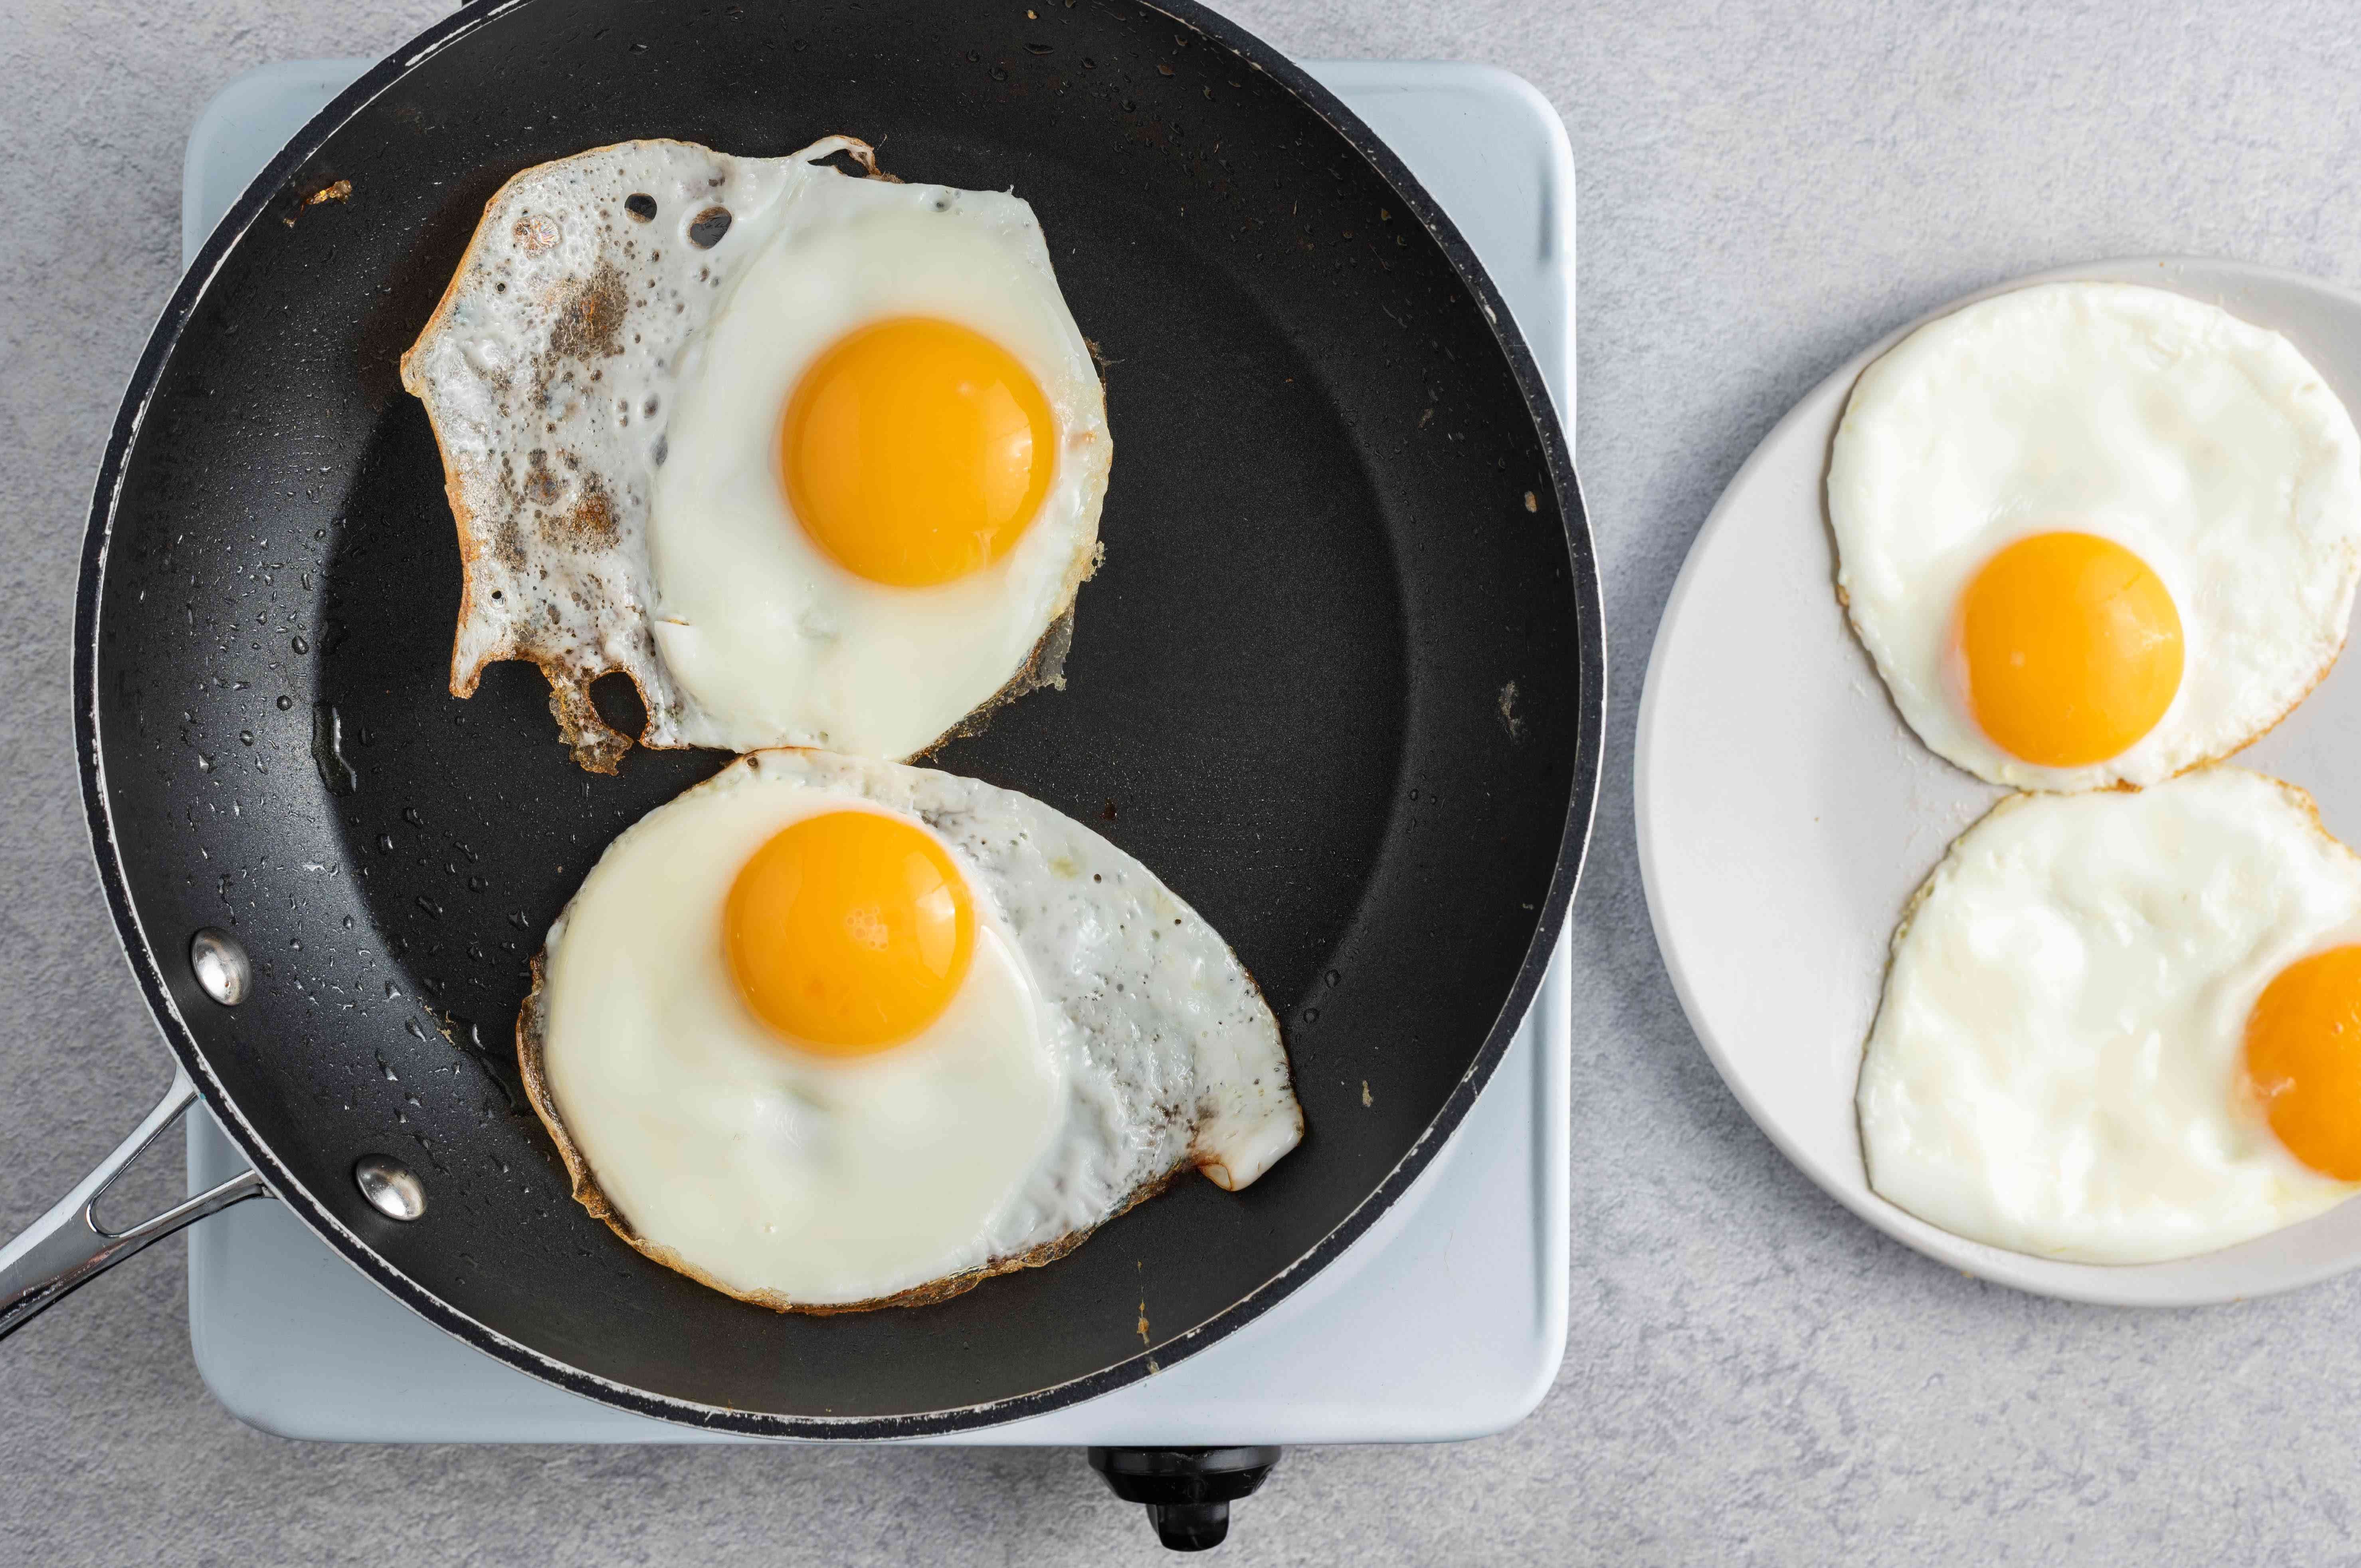 sunny side up eggs in a black non-stick pan